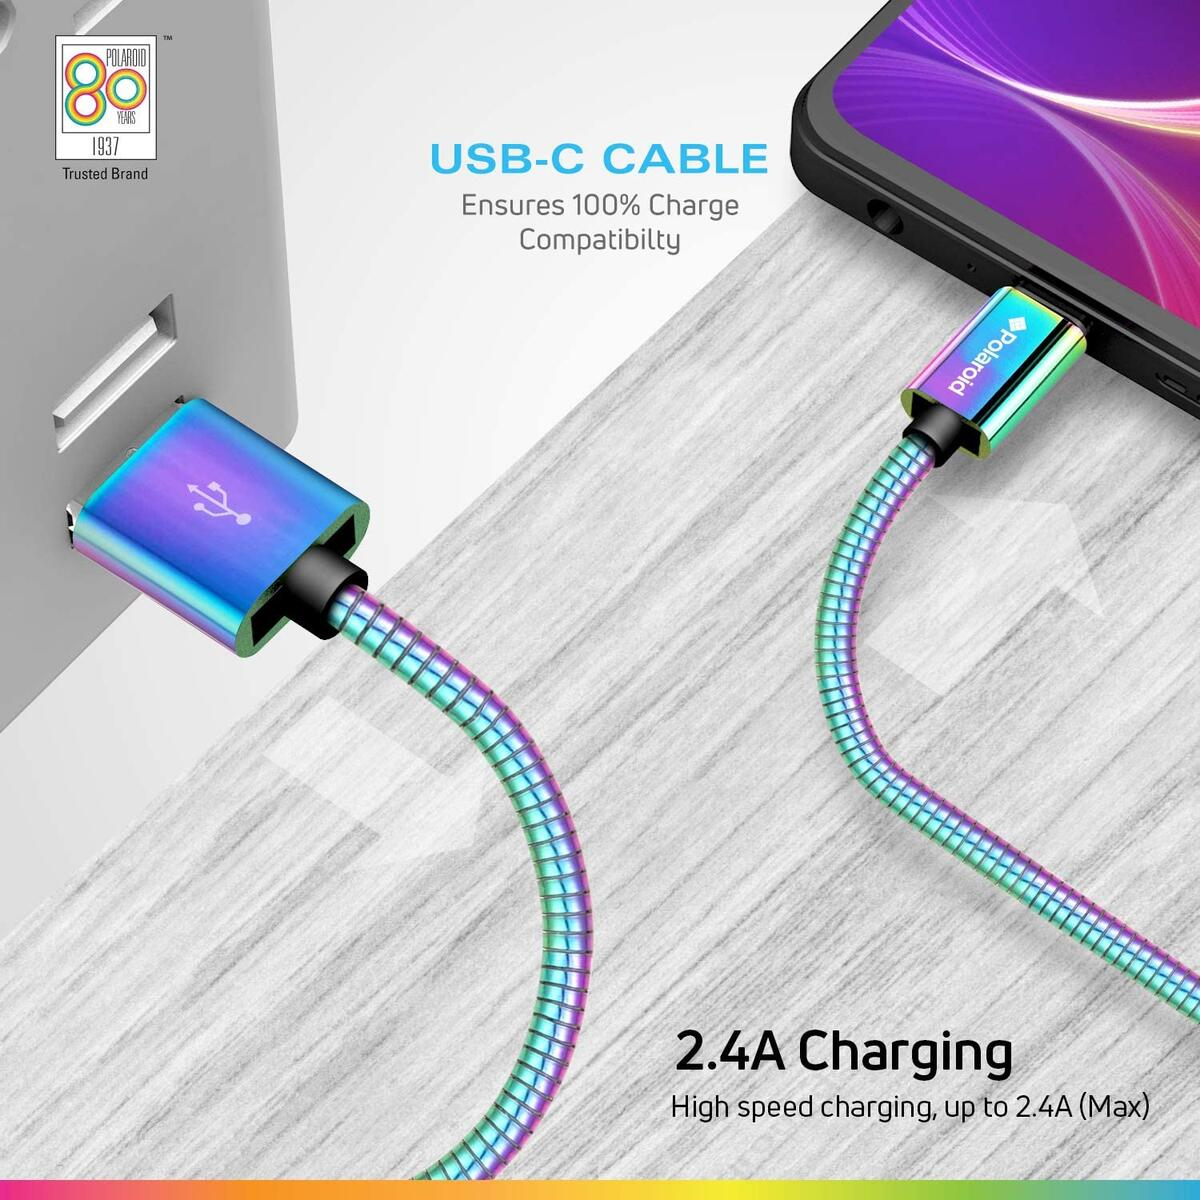 Polaroid 5ft USB C Cable - Fast Charge, Compatible With QC Devices - Colorful/Iridescent